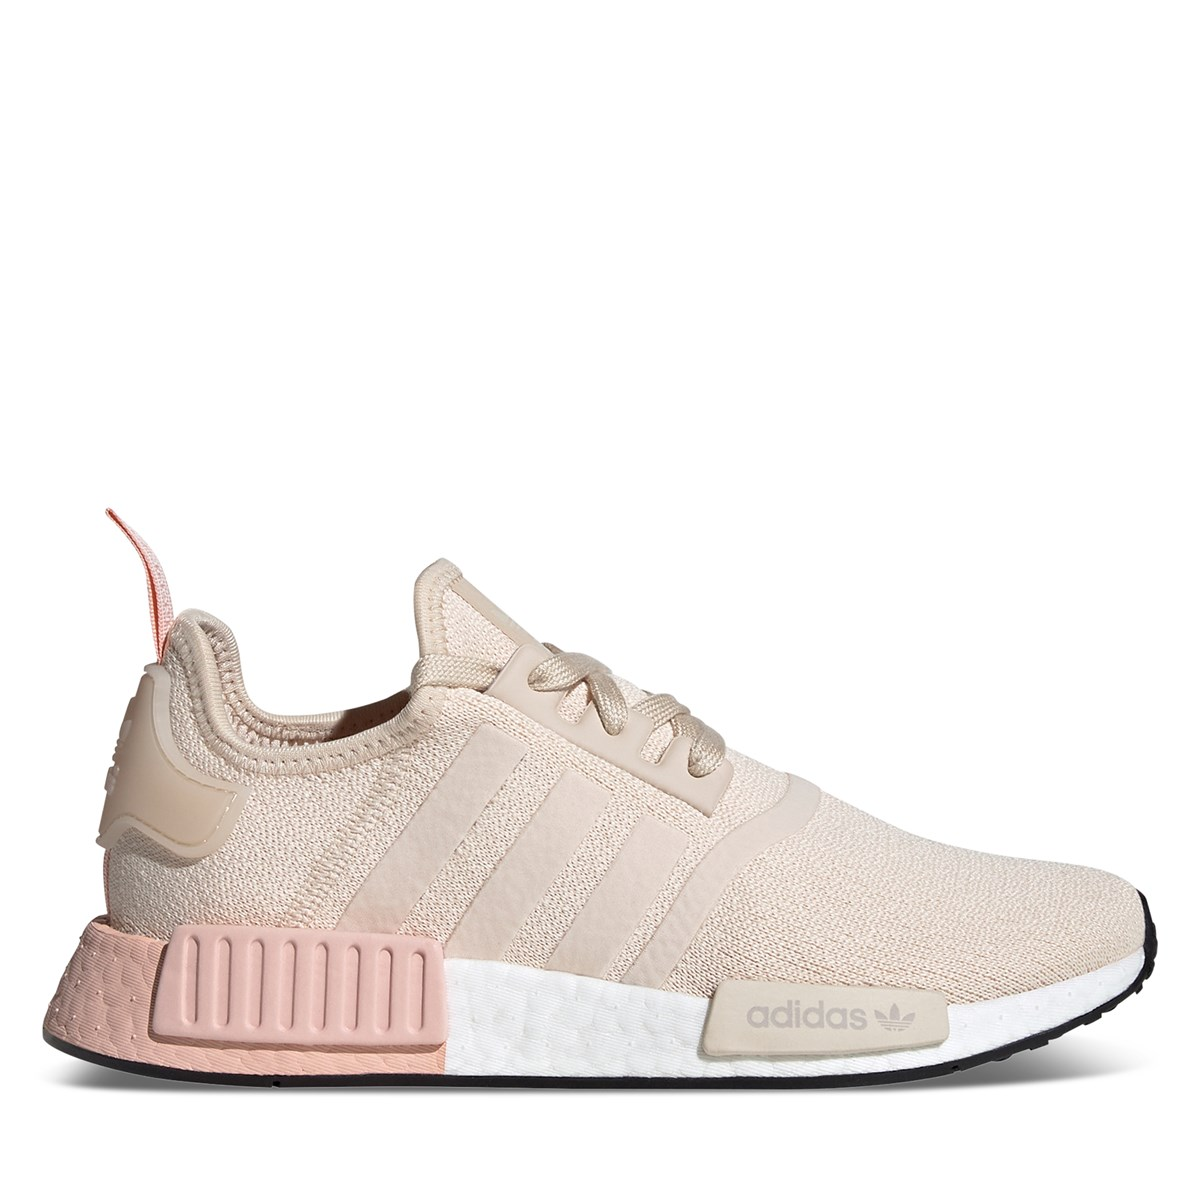 Women's NMD R1 Sneakers in Baby Pink